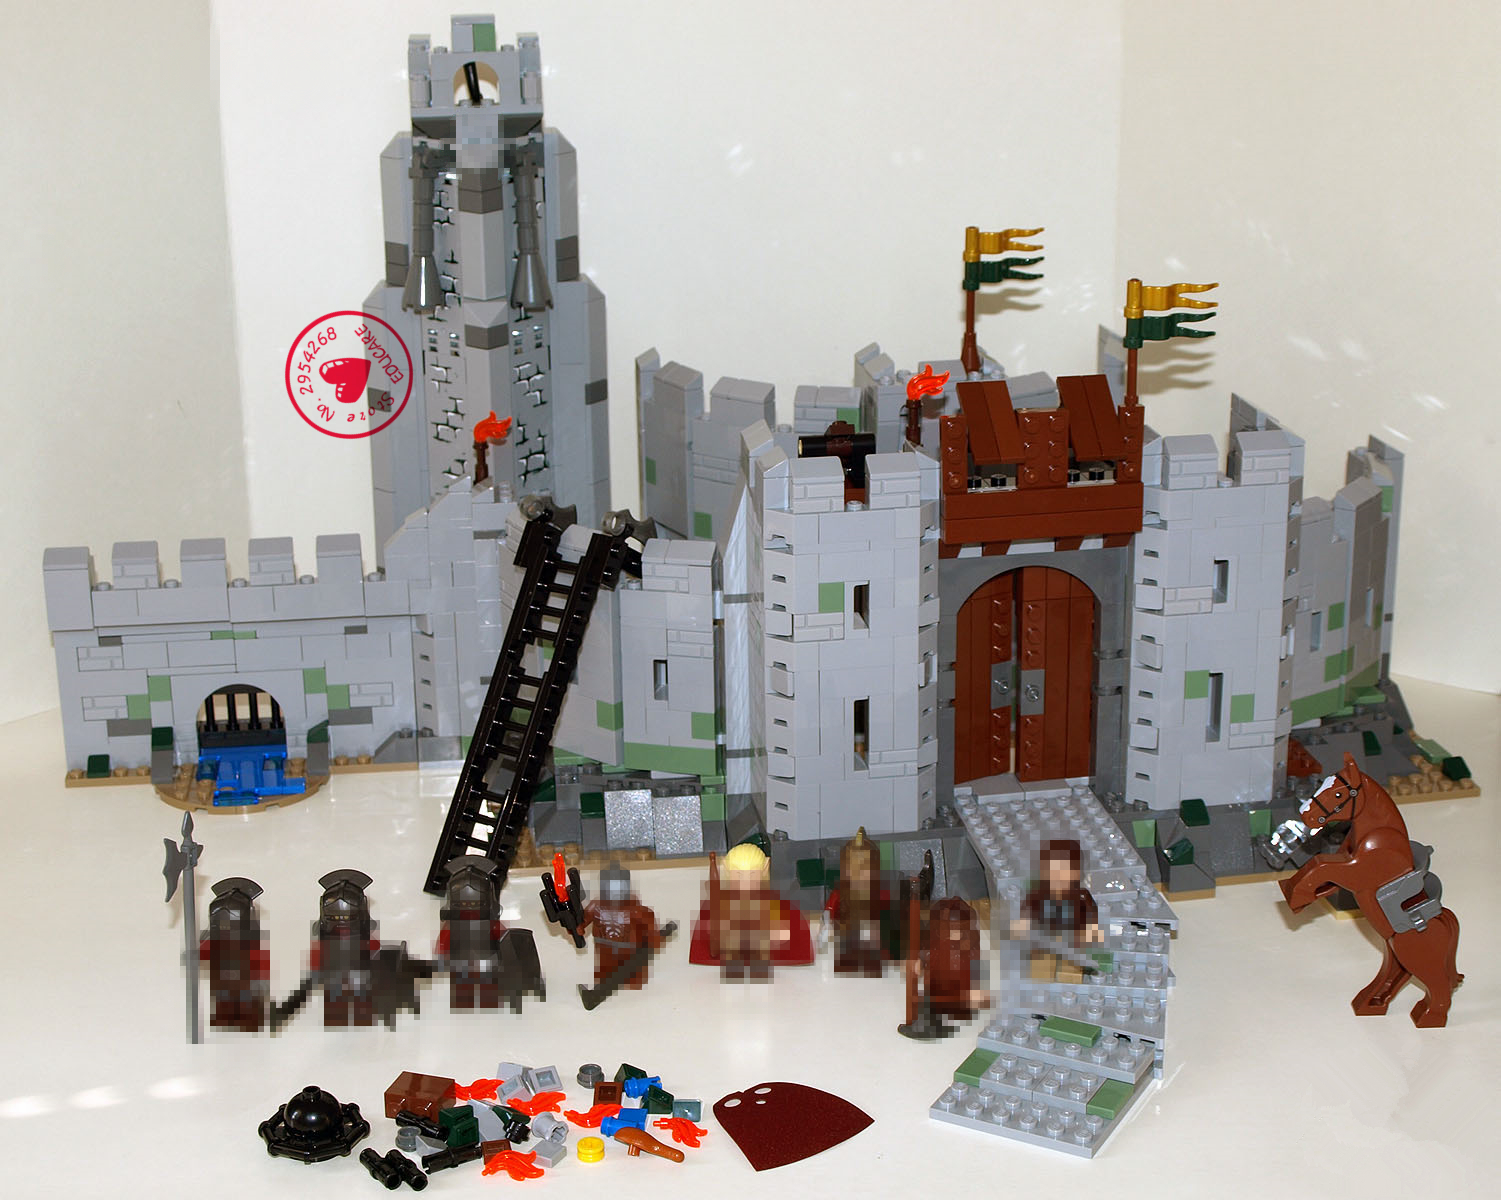 Lepin 16013 The Lord of the Rings Series Battle Of Helm' Deep Model Building Blocks Bricks kid gift set compatiable 9474 hot sale the hobbit lord of the rings mordor orc uruk hai aragorn rohan mirkwood elf building blocks bricks children gift toys